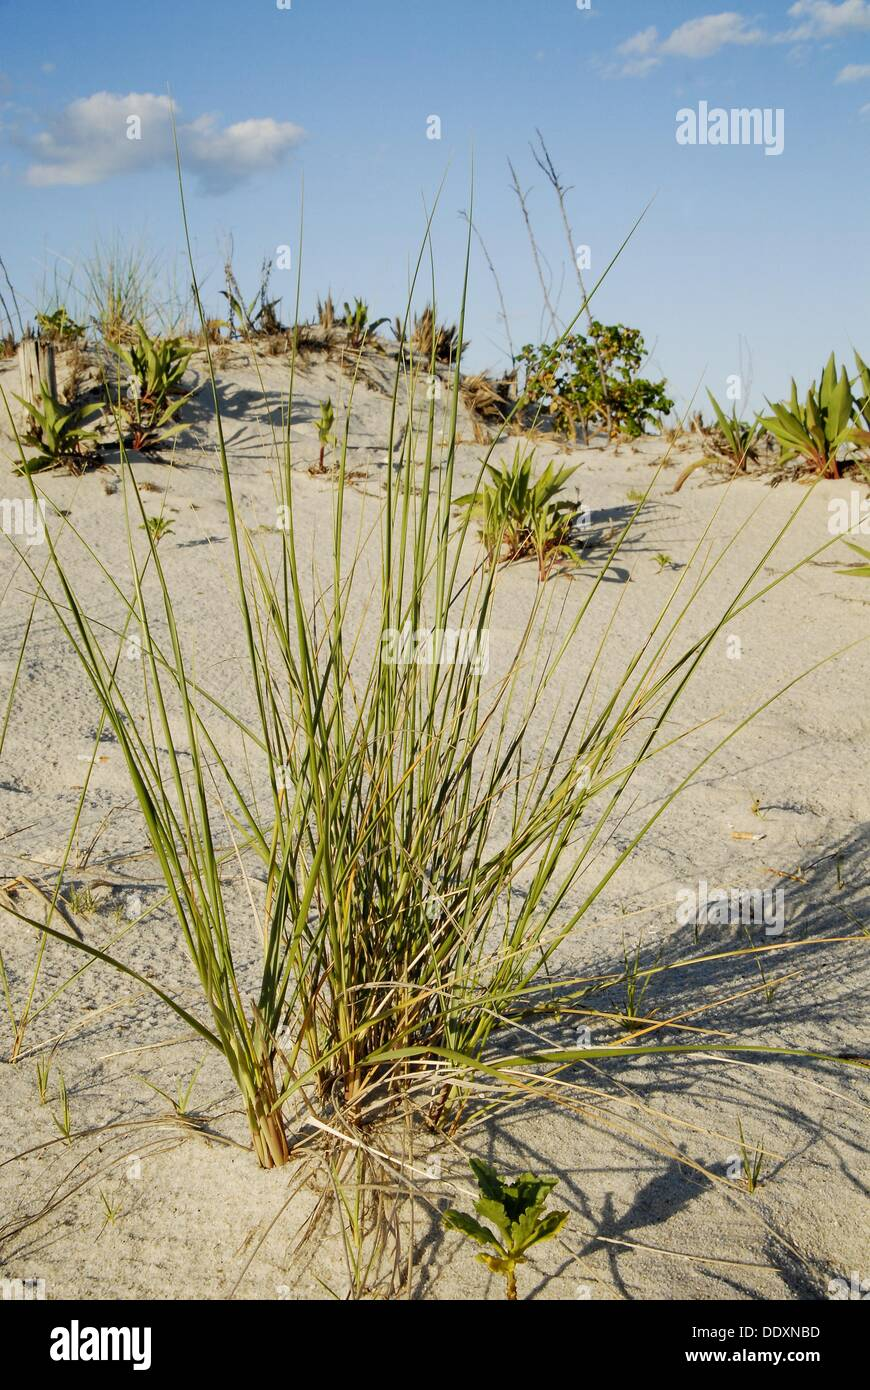 Lonely dune grass spreads out on sand, Long Beach Island, New Jersey, USA. - Stock Image